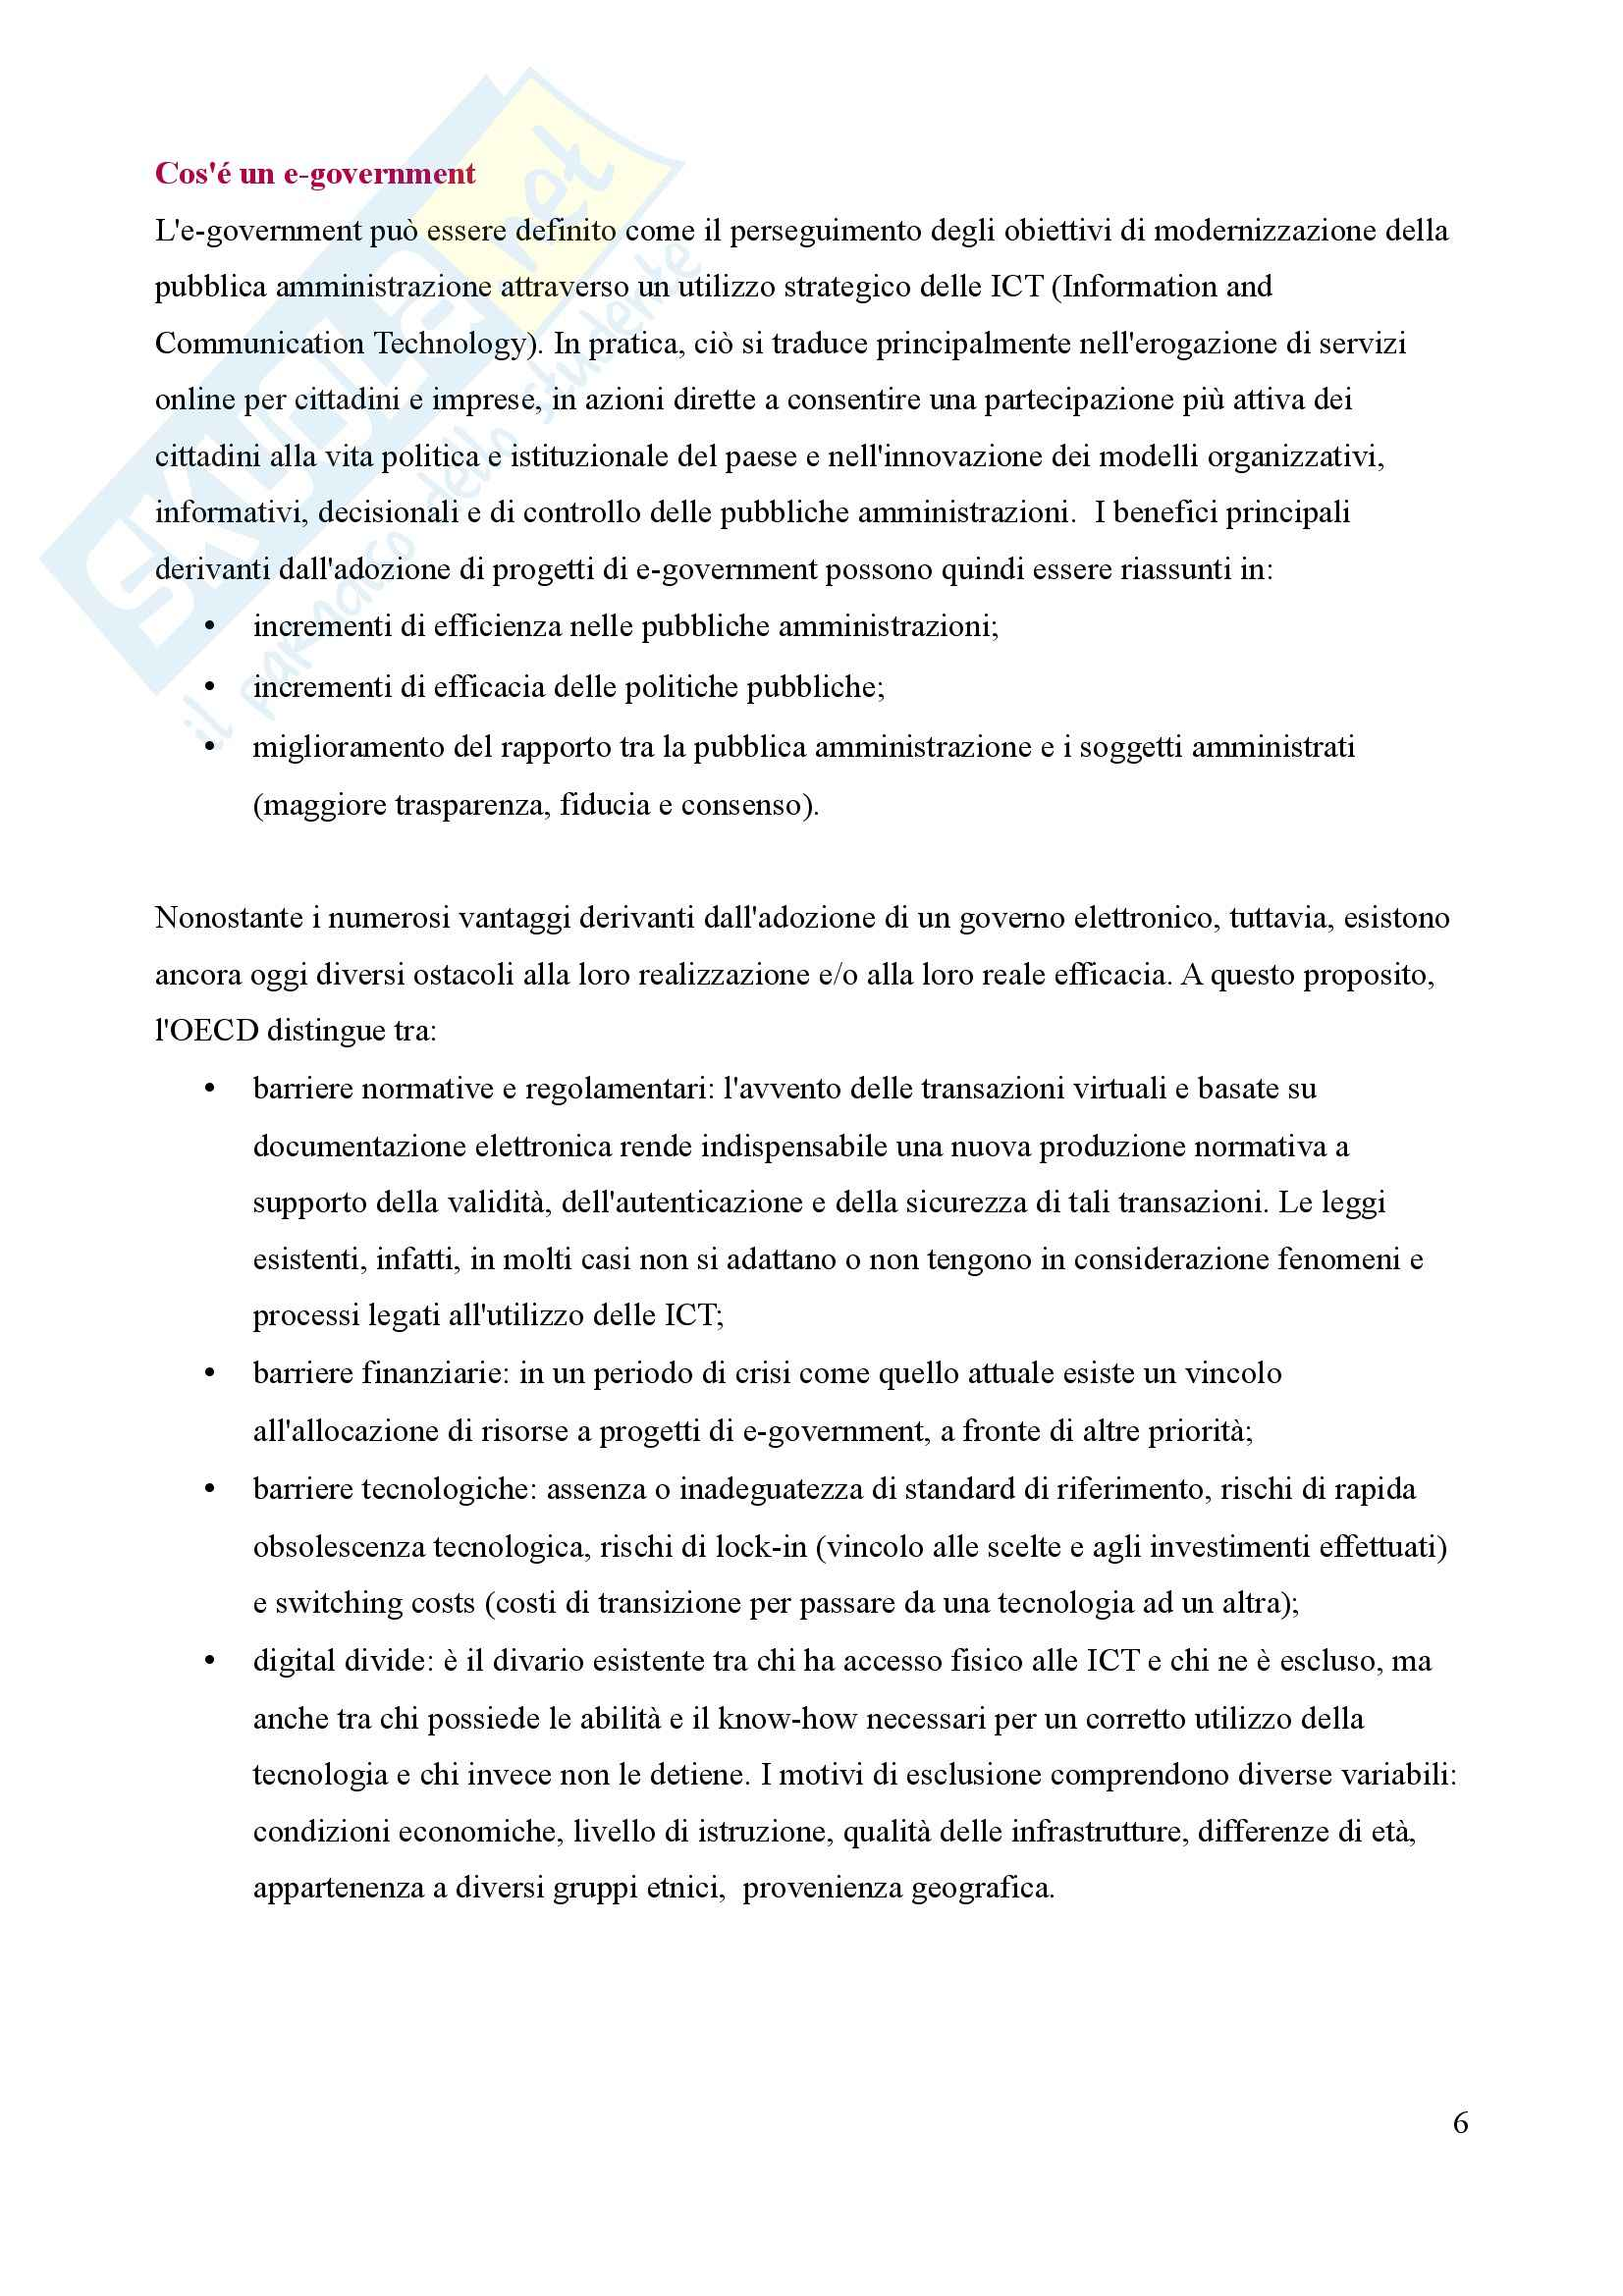 Tesi, Smart Cities: due casi a confronto Pag. 6